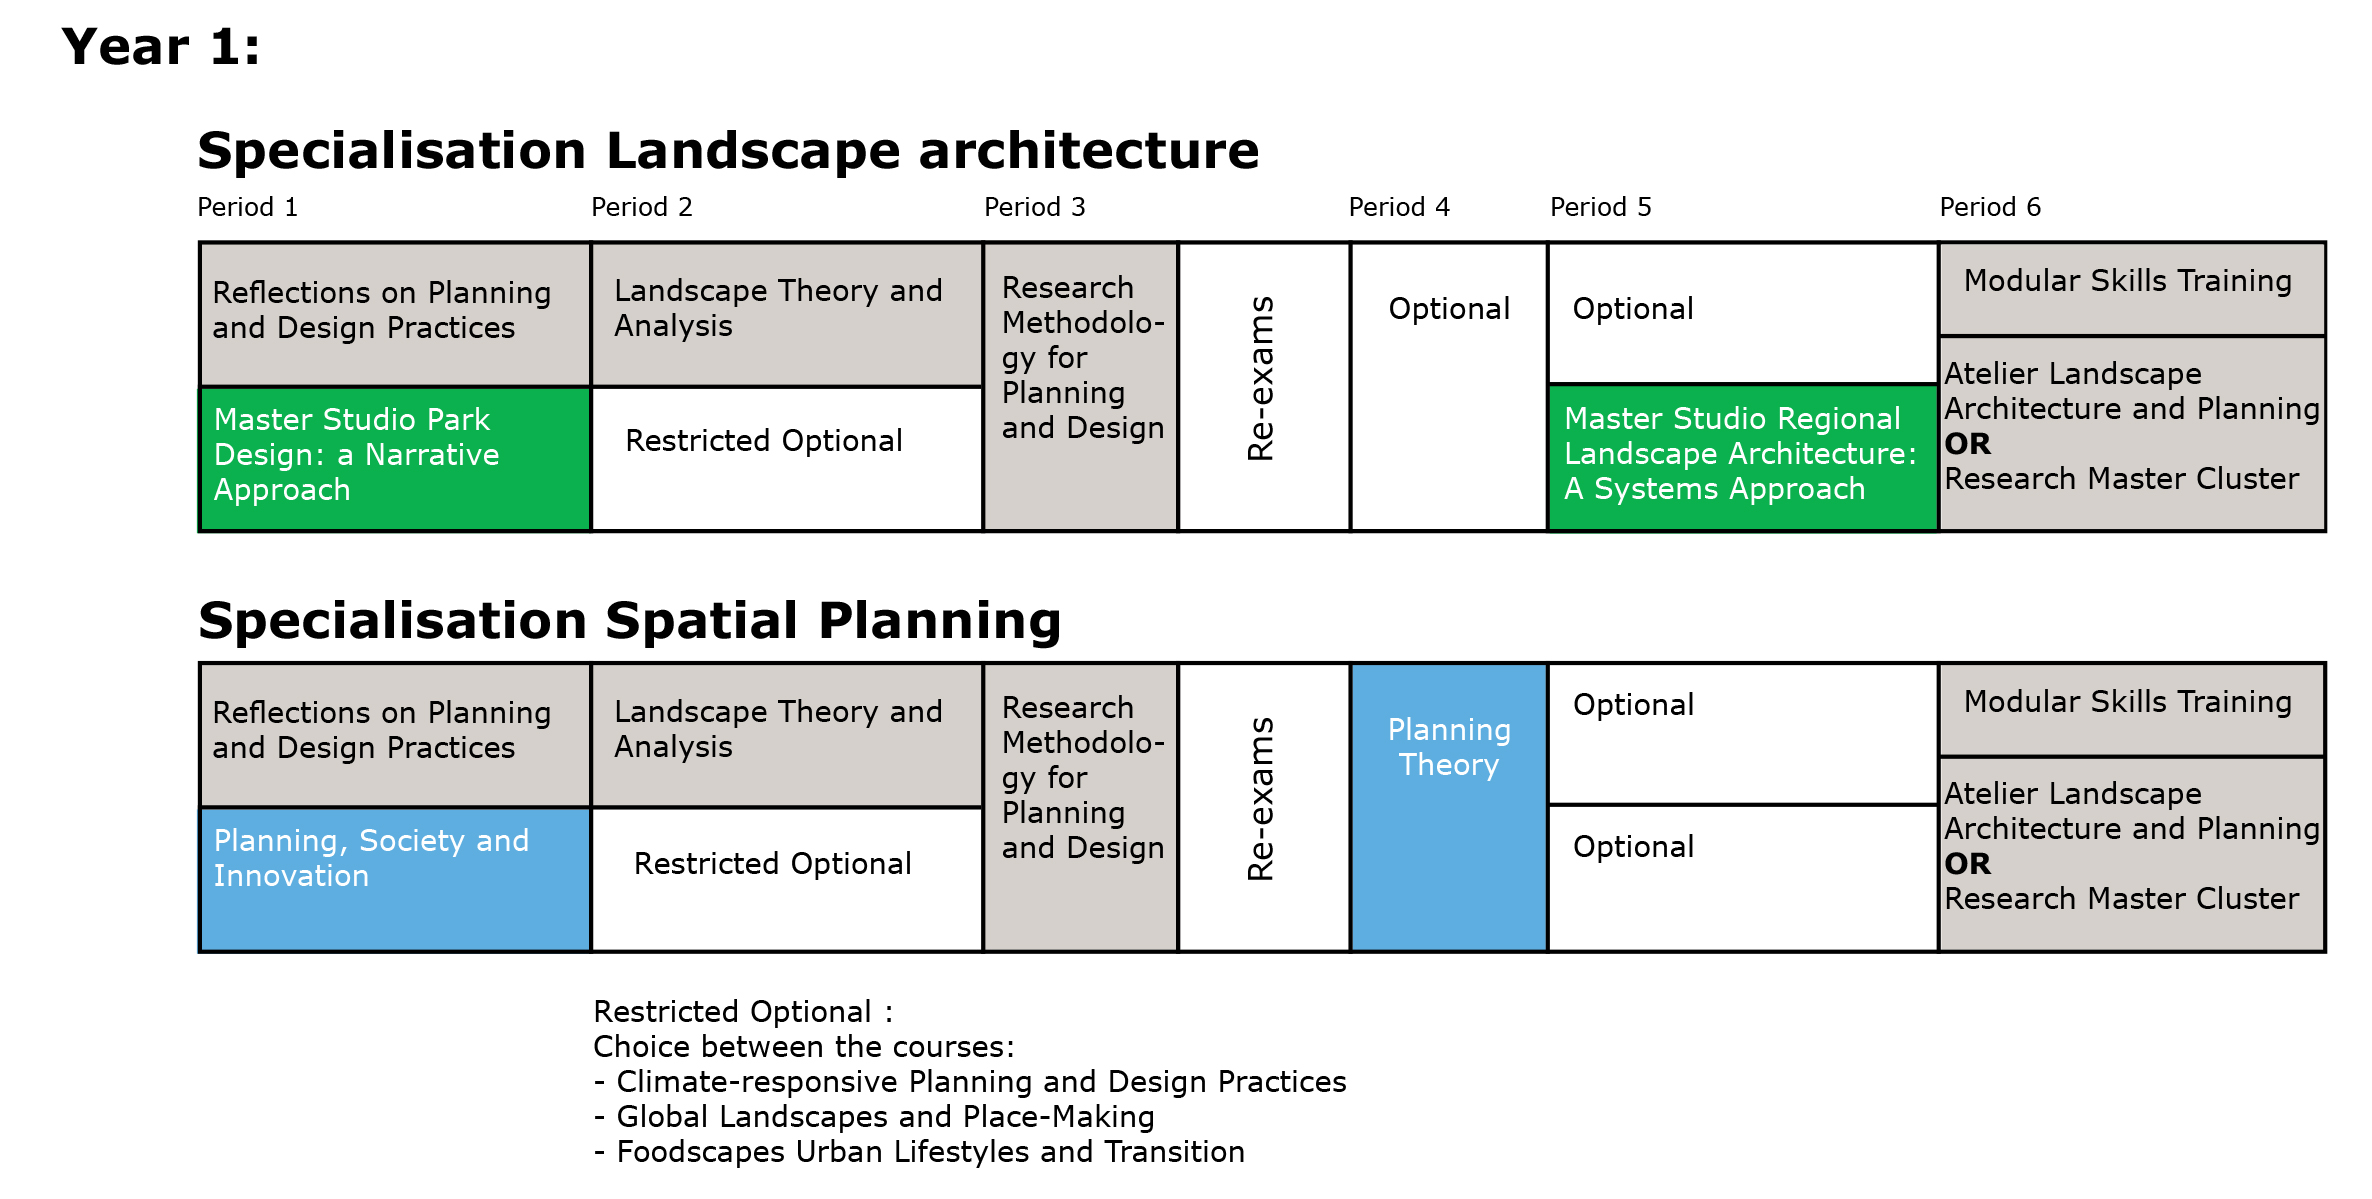 012 Landscape Architecture Essay Example 0a723613d9ff Programma20mlp20in20indesign 2015 Stunning Argumentative Topics Full